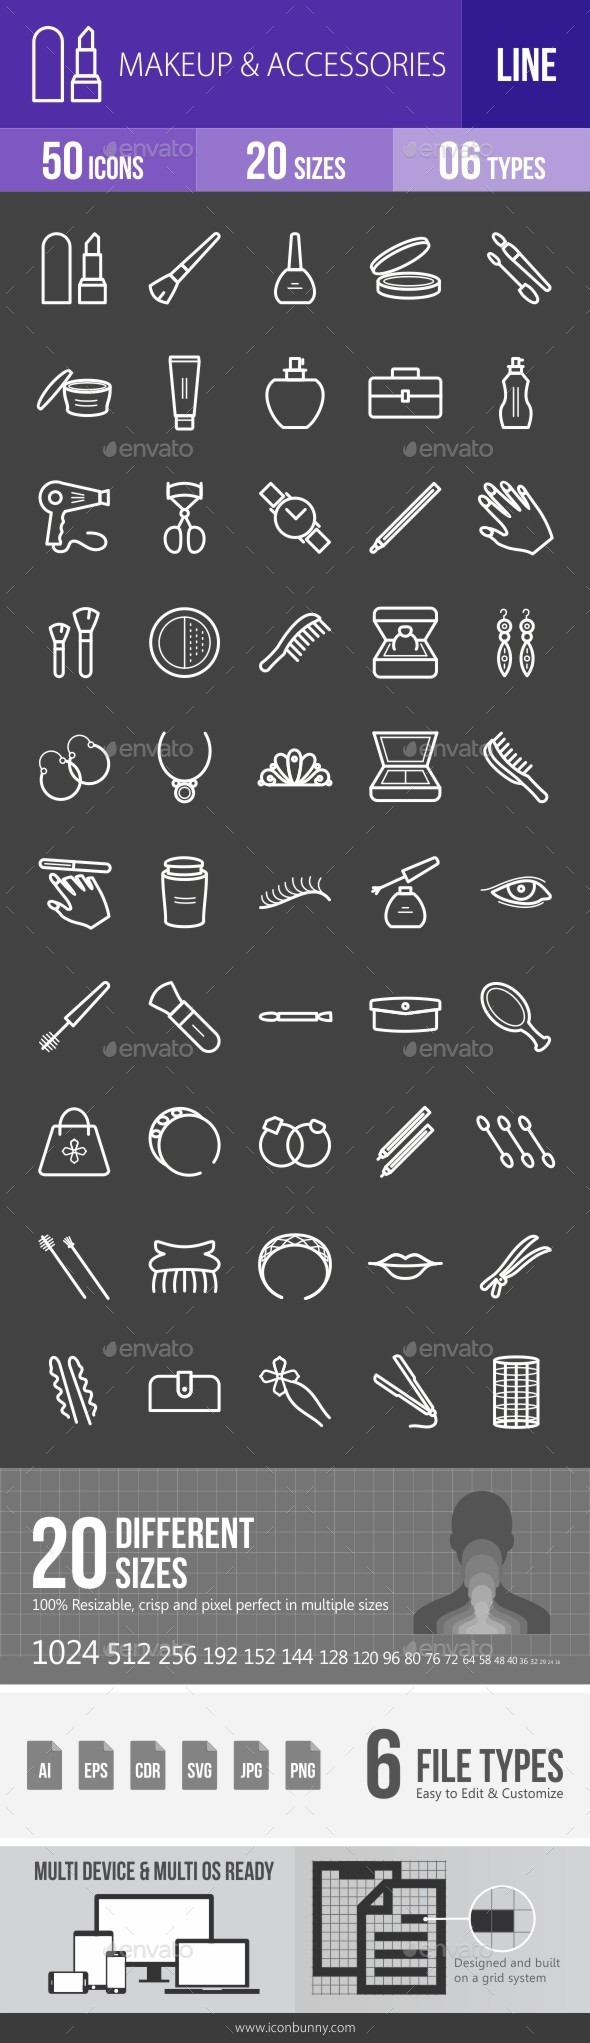 Makeup & Accessories Line Inverted Icons - Icons